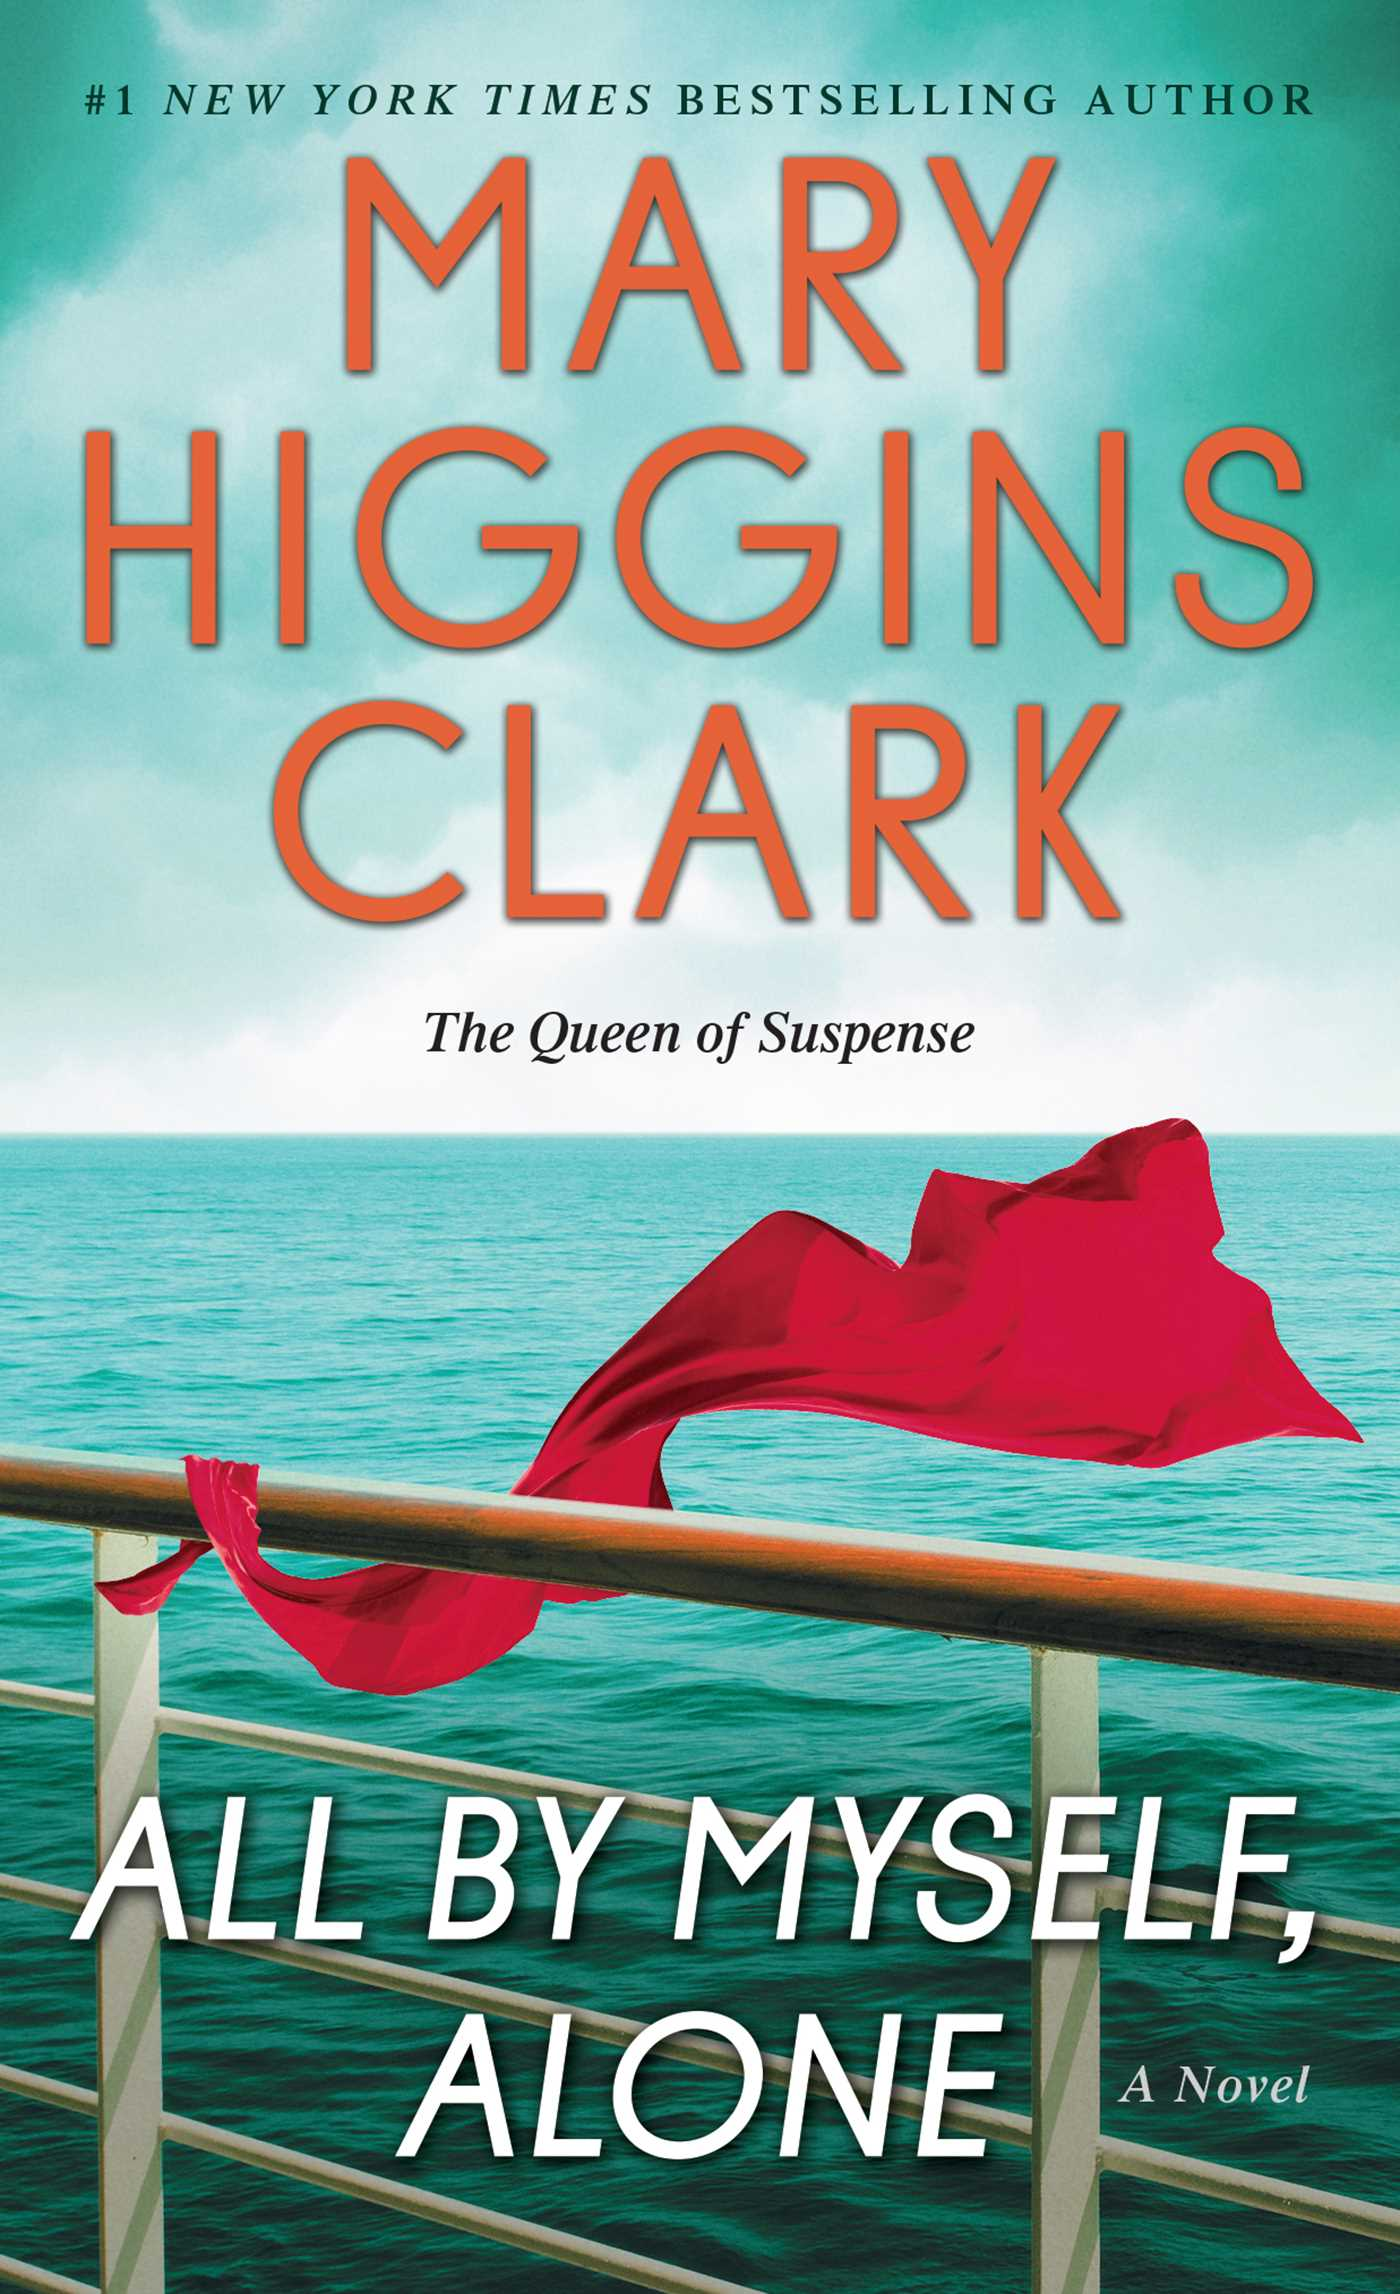 All By Myself Alone Book by Mary Higgins Clark